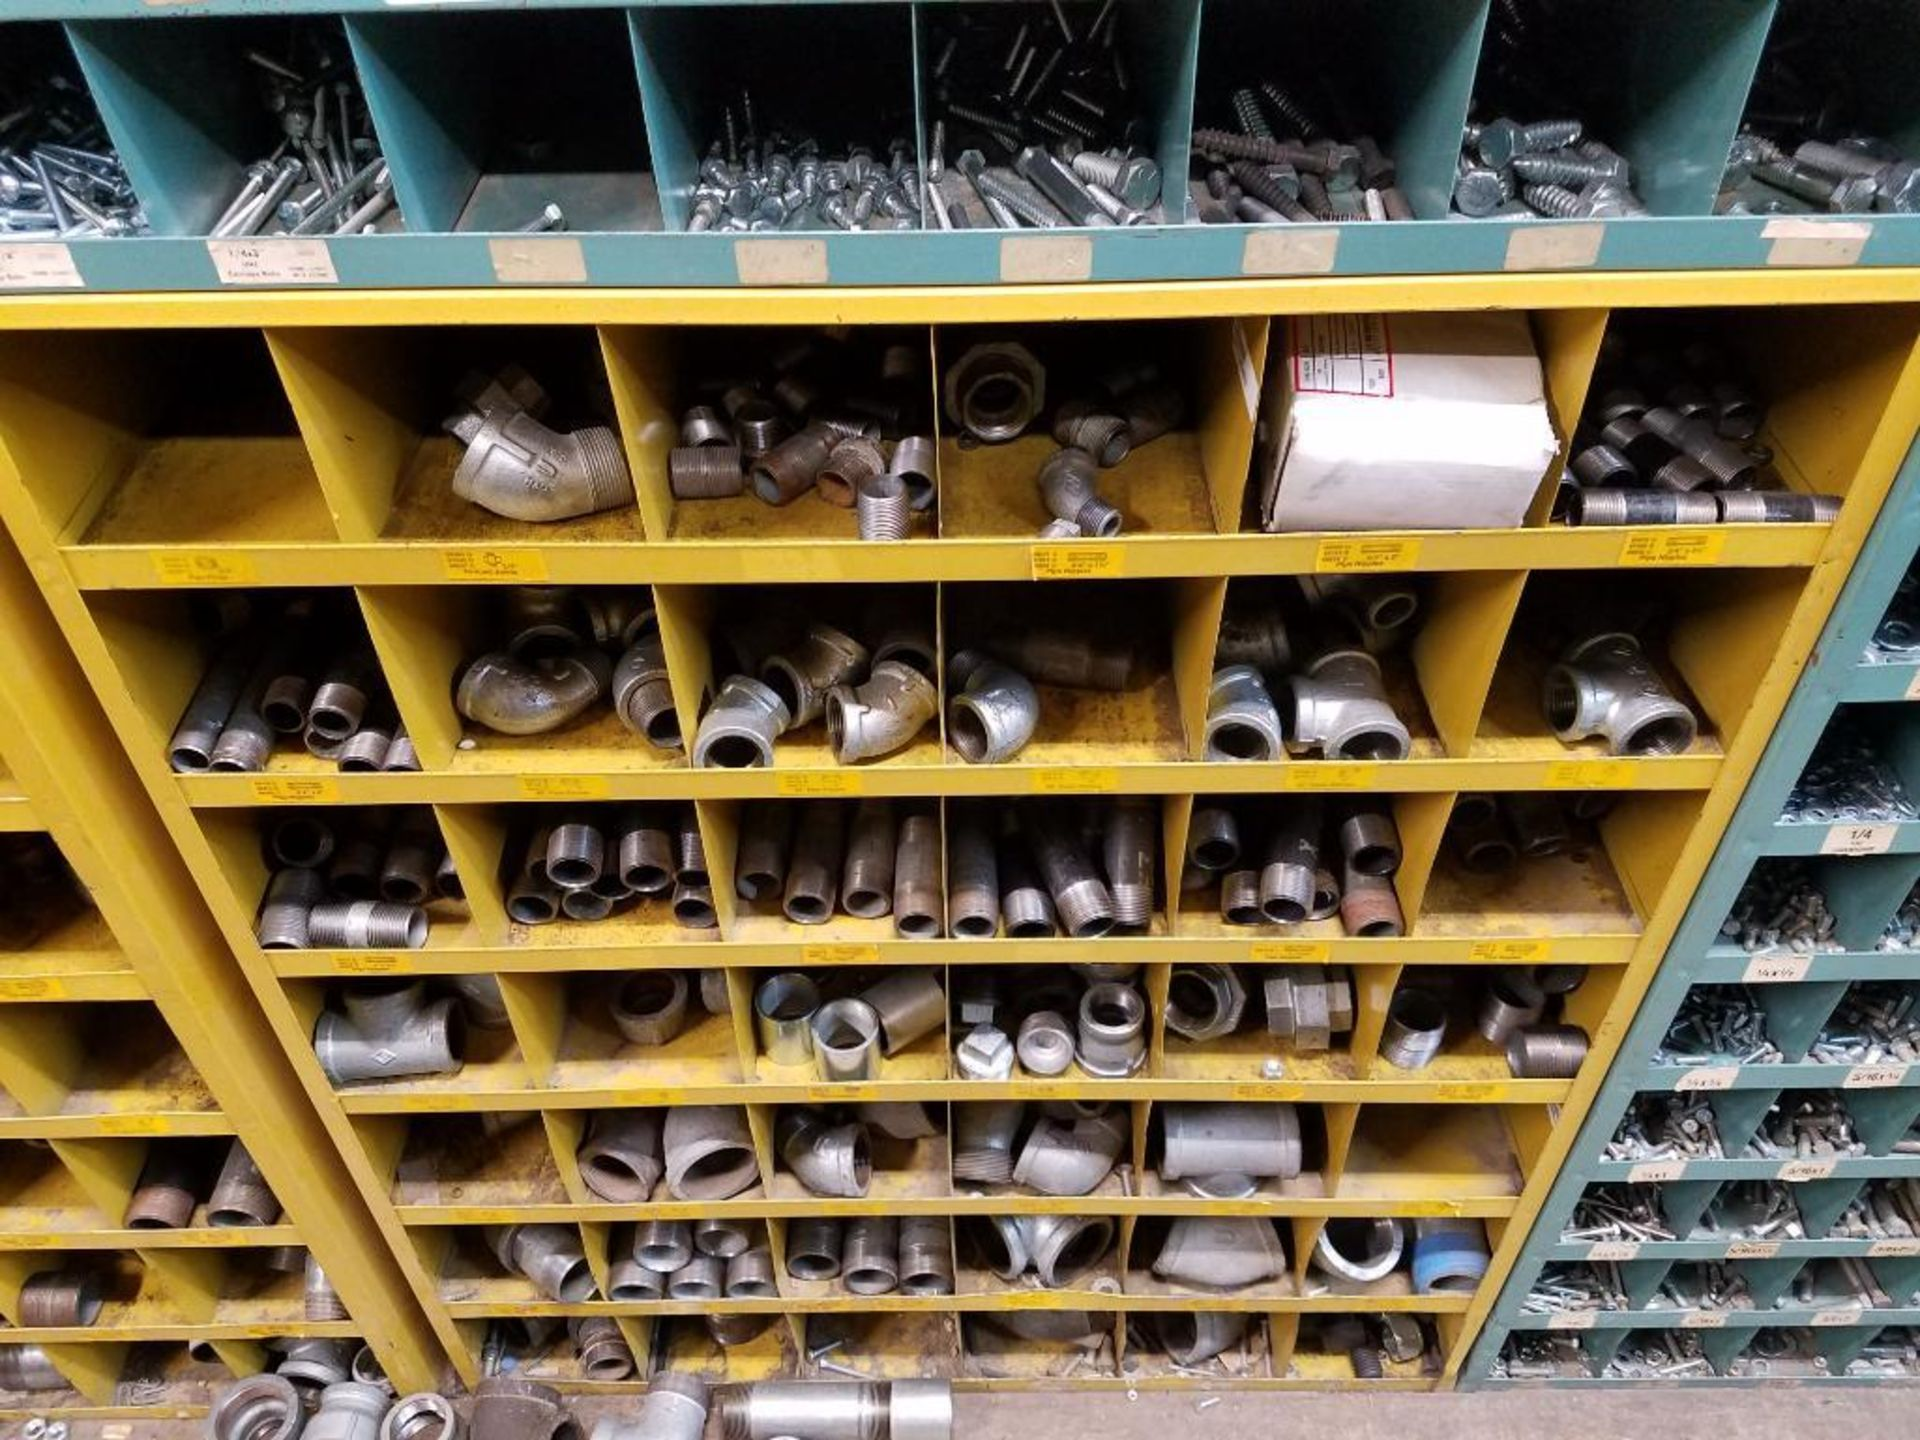 various nuts, bolts, screws, and pipes, storage units not included - Image 7 of 10